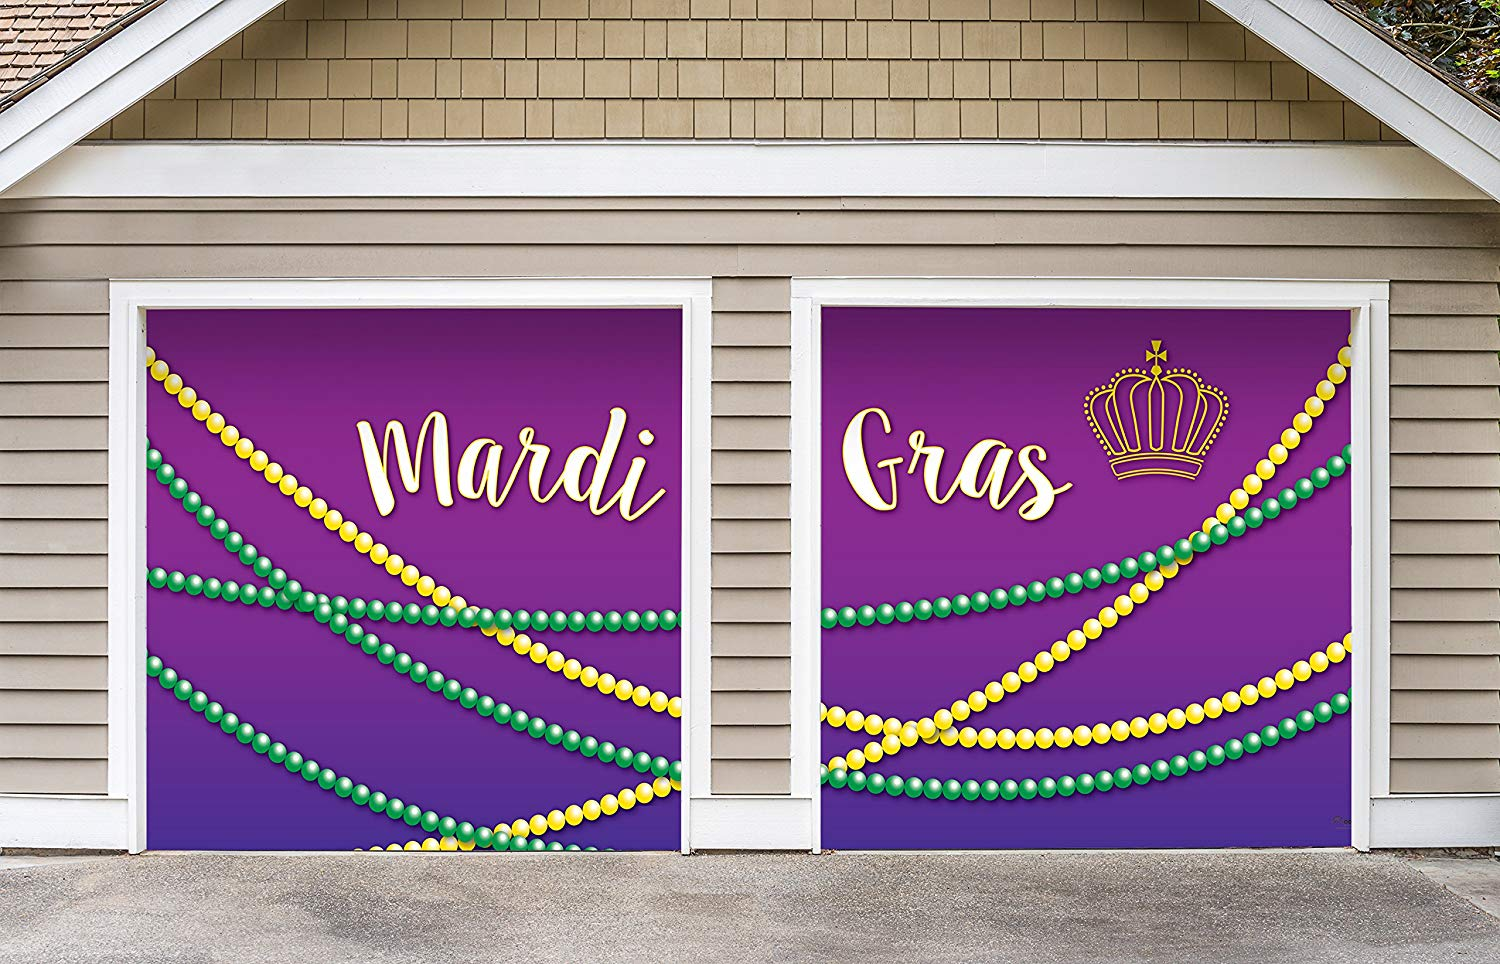 Victory Corps Outdoor Mardi Gras Decorations 2 Car Split Garage Door Banner Cover Mural - Mardi Gras Beads, Two 7'x 8' Graphic Kits - The Original Mardi Gras Supplies Garage Door Banner Decor